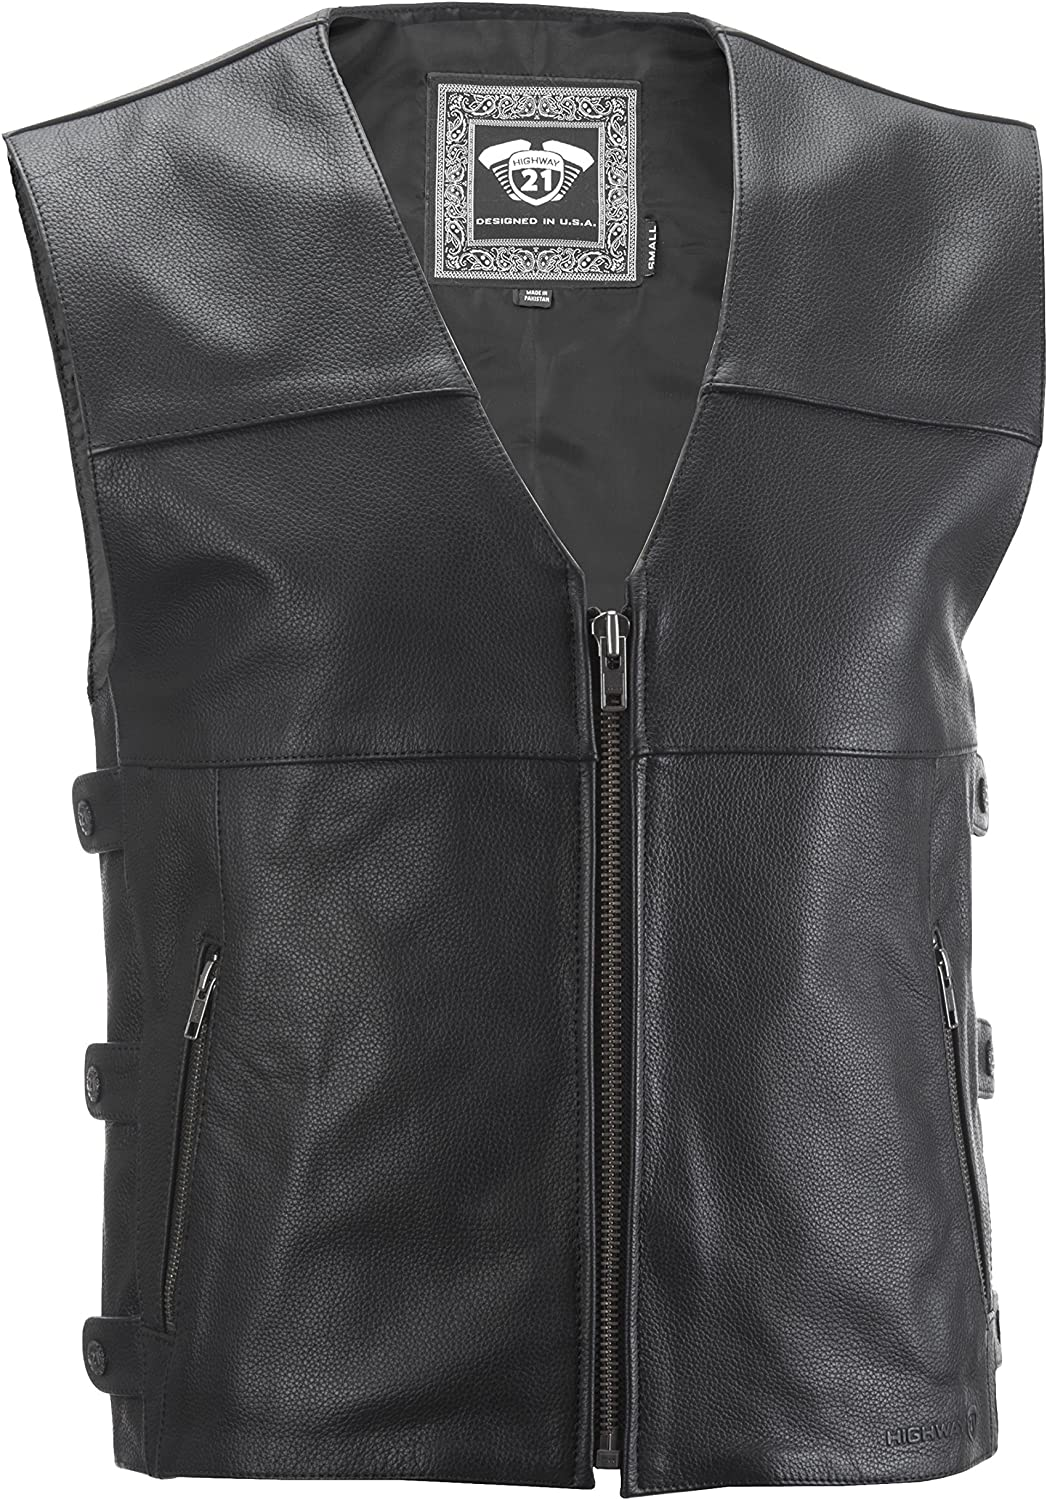 Highway 21 Leather Motorcycle Vest W/Concealed Carry Pocket